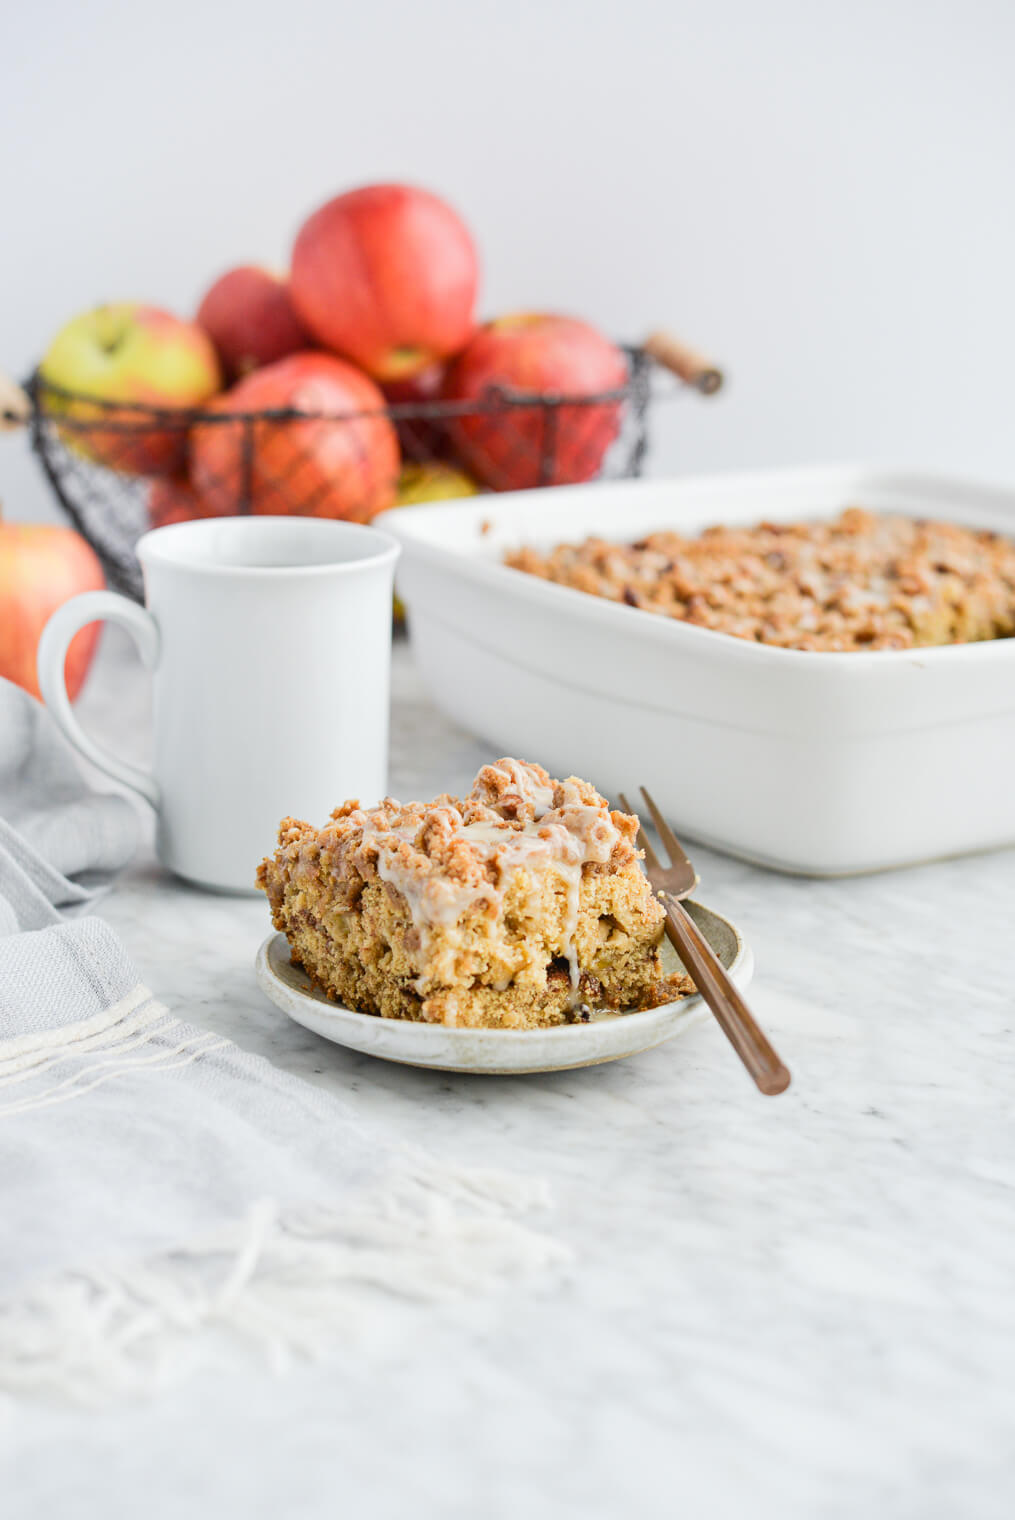 the side view of a piece of apple coffee cake on a plate sitting next to the dish of coffee cake, a mug of black coffee, and a basket of apples